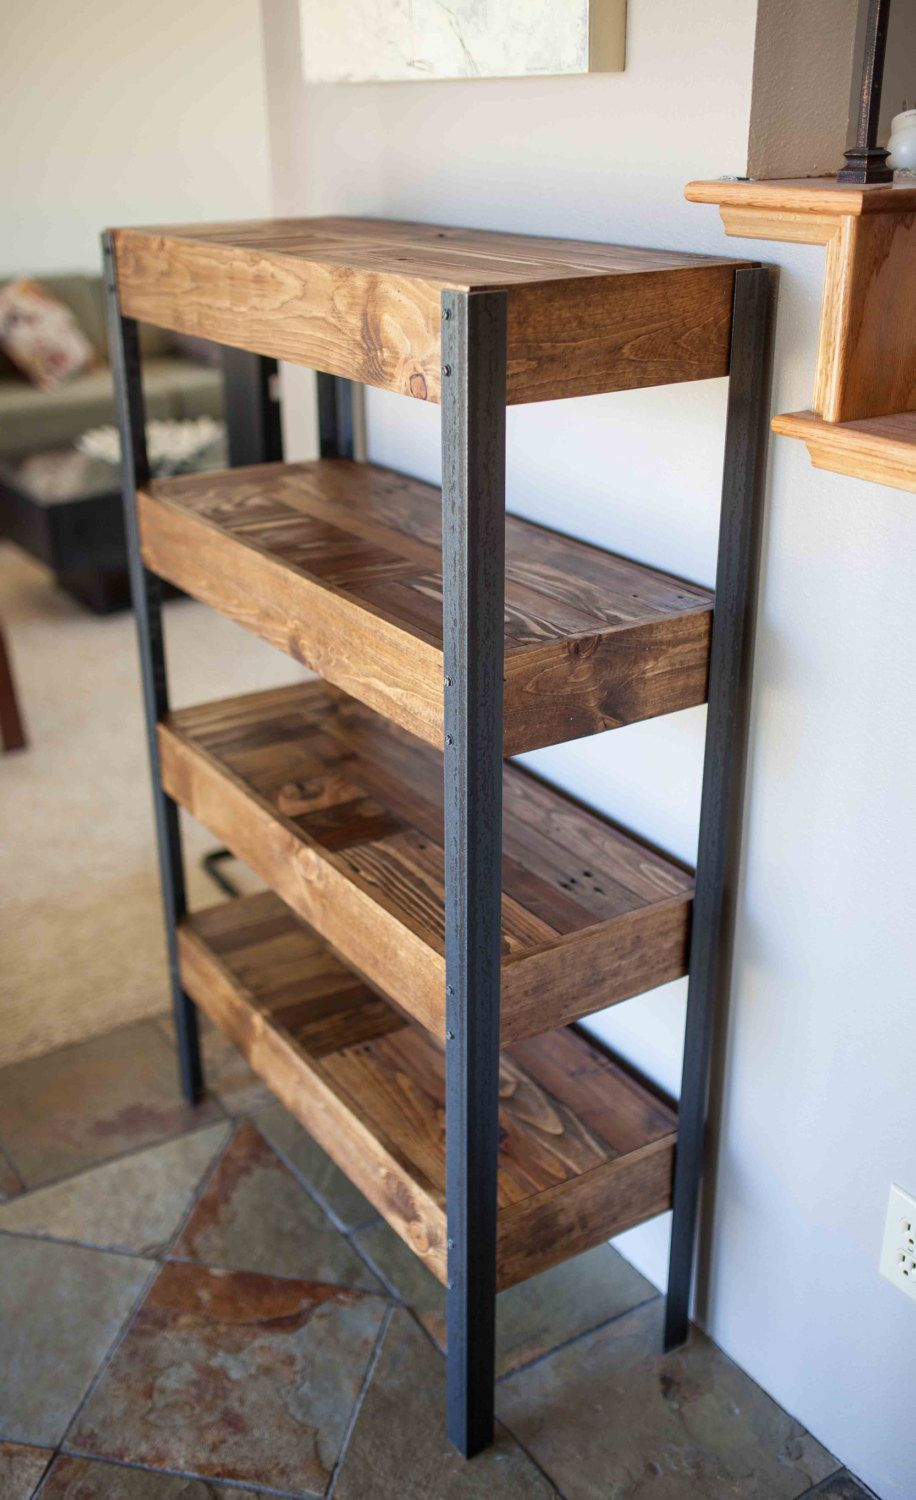 Muebles De Madera Y Metal Pallet Wood And Metal Leg Bookshelf Home Madera Muebles